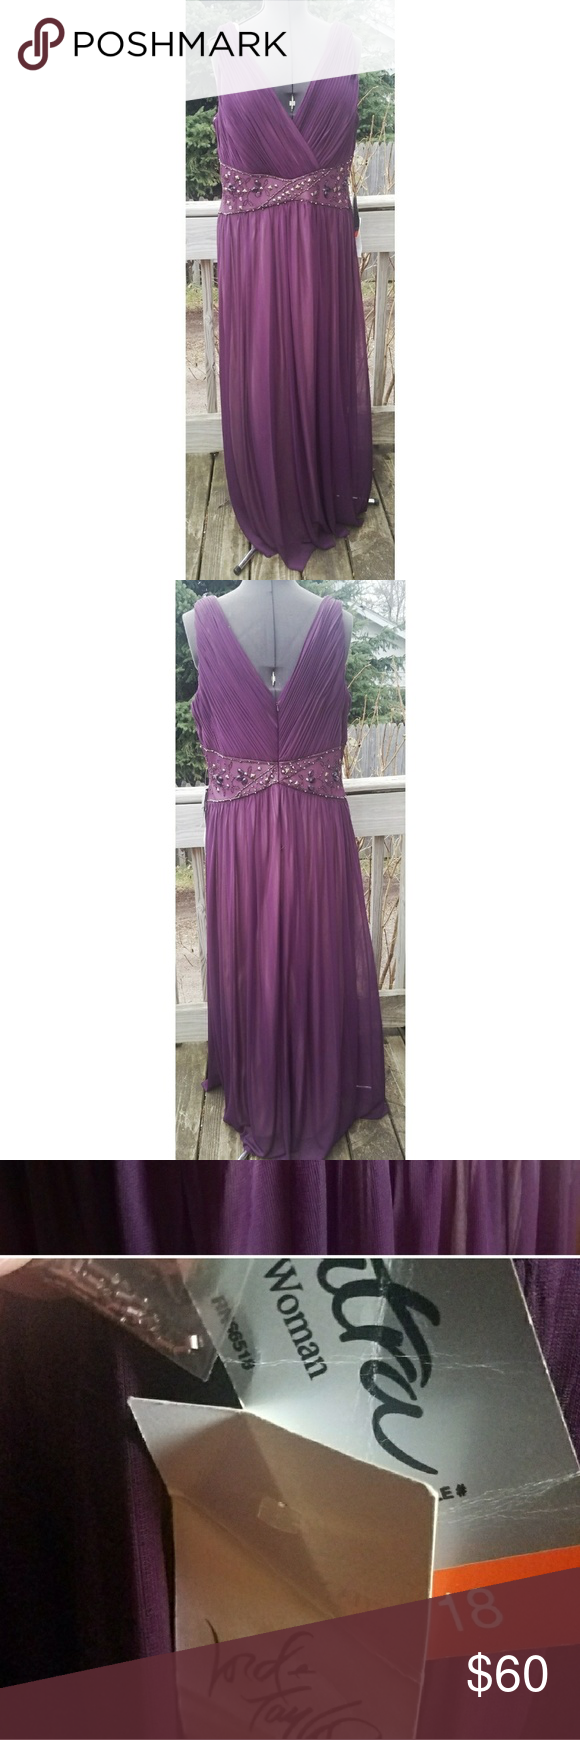 Patra evening gown NWT